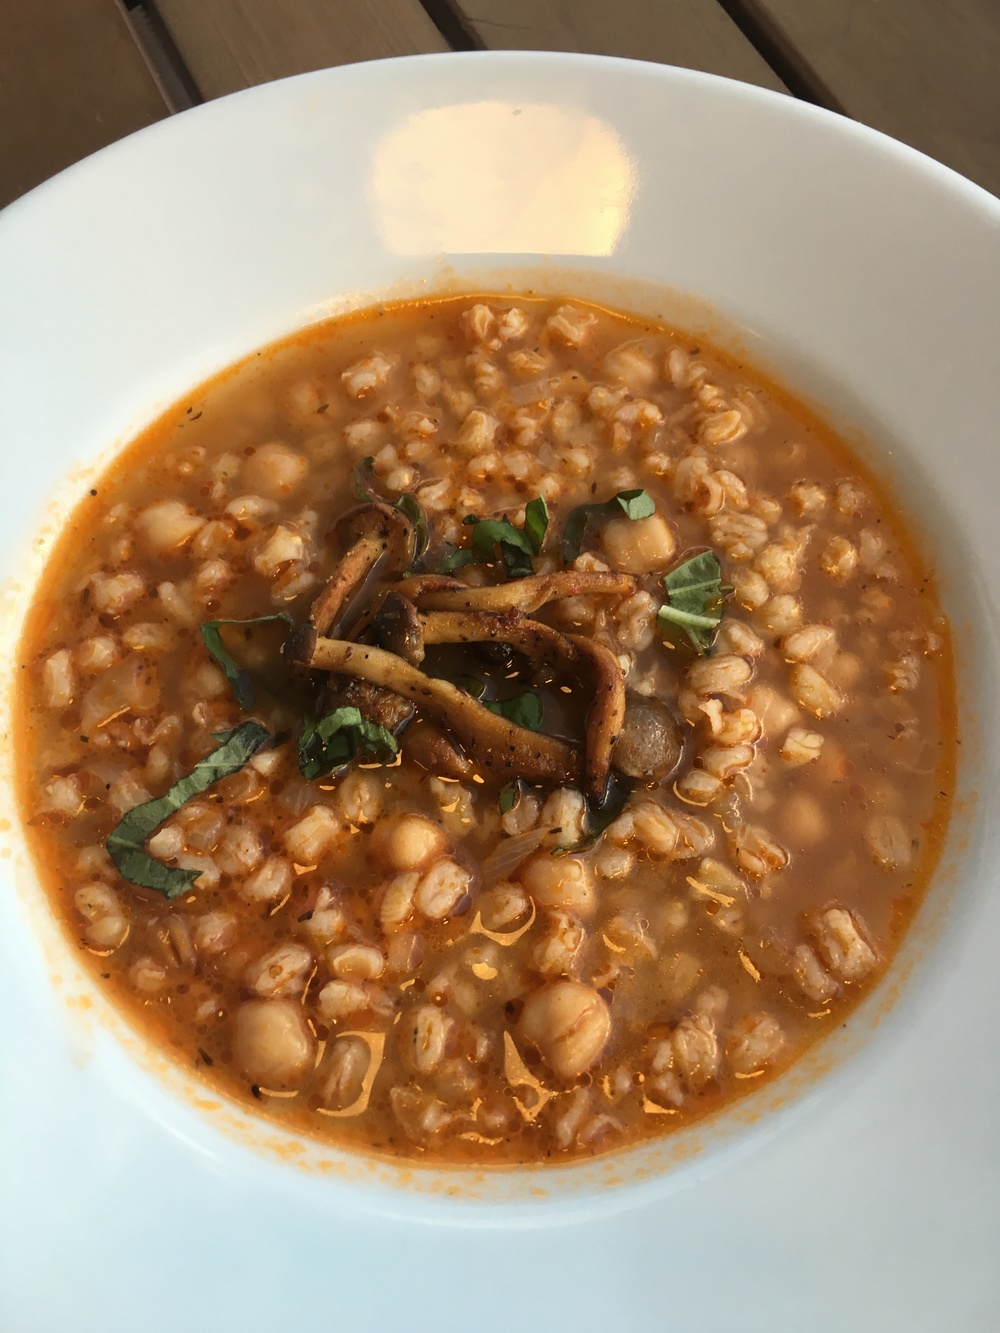 Dinner Appetizer Two: Chickpea farro soup topped with smoked mushrooms and basil.